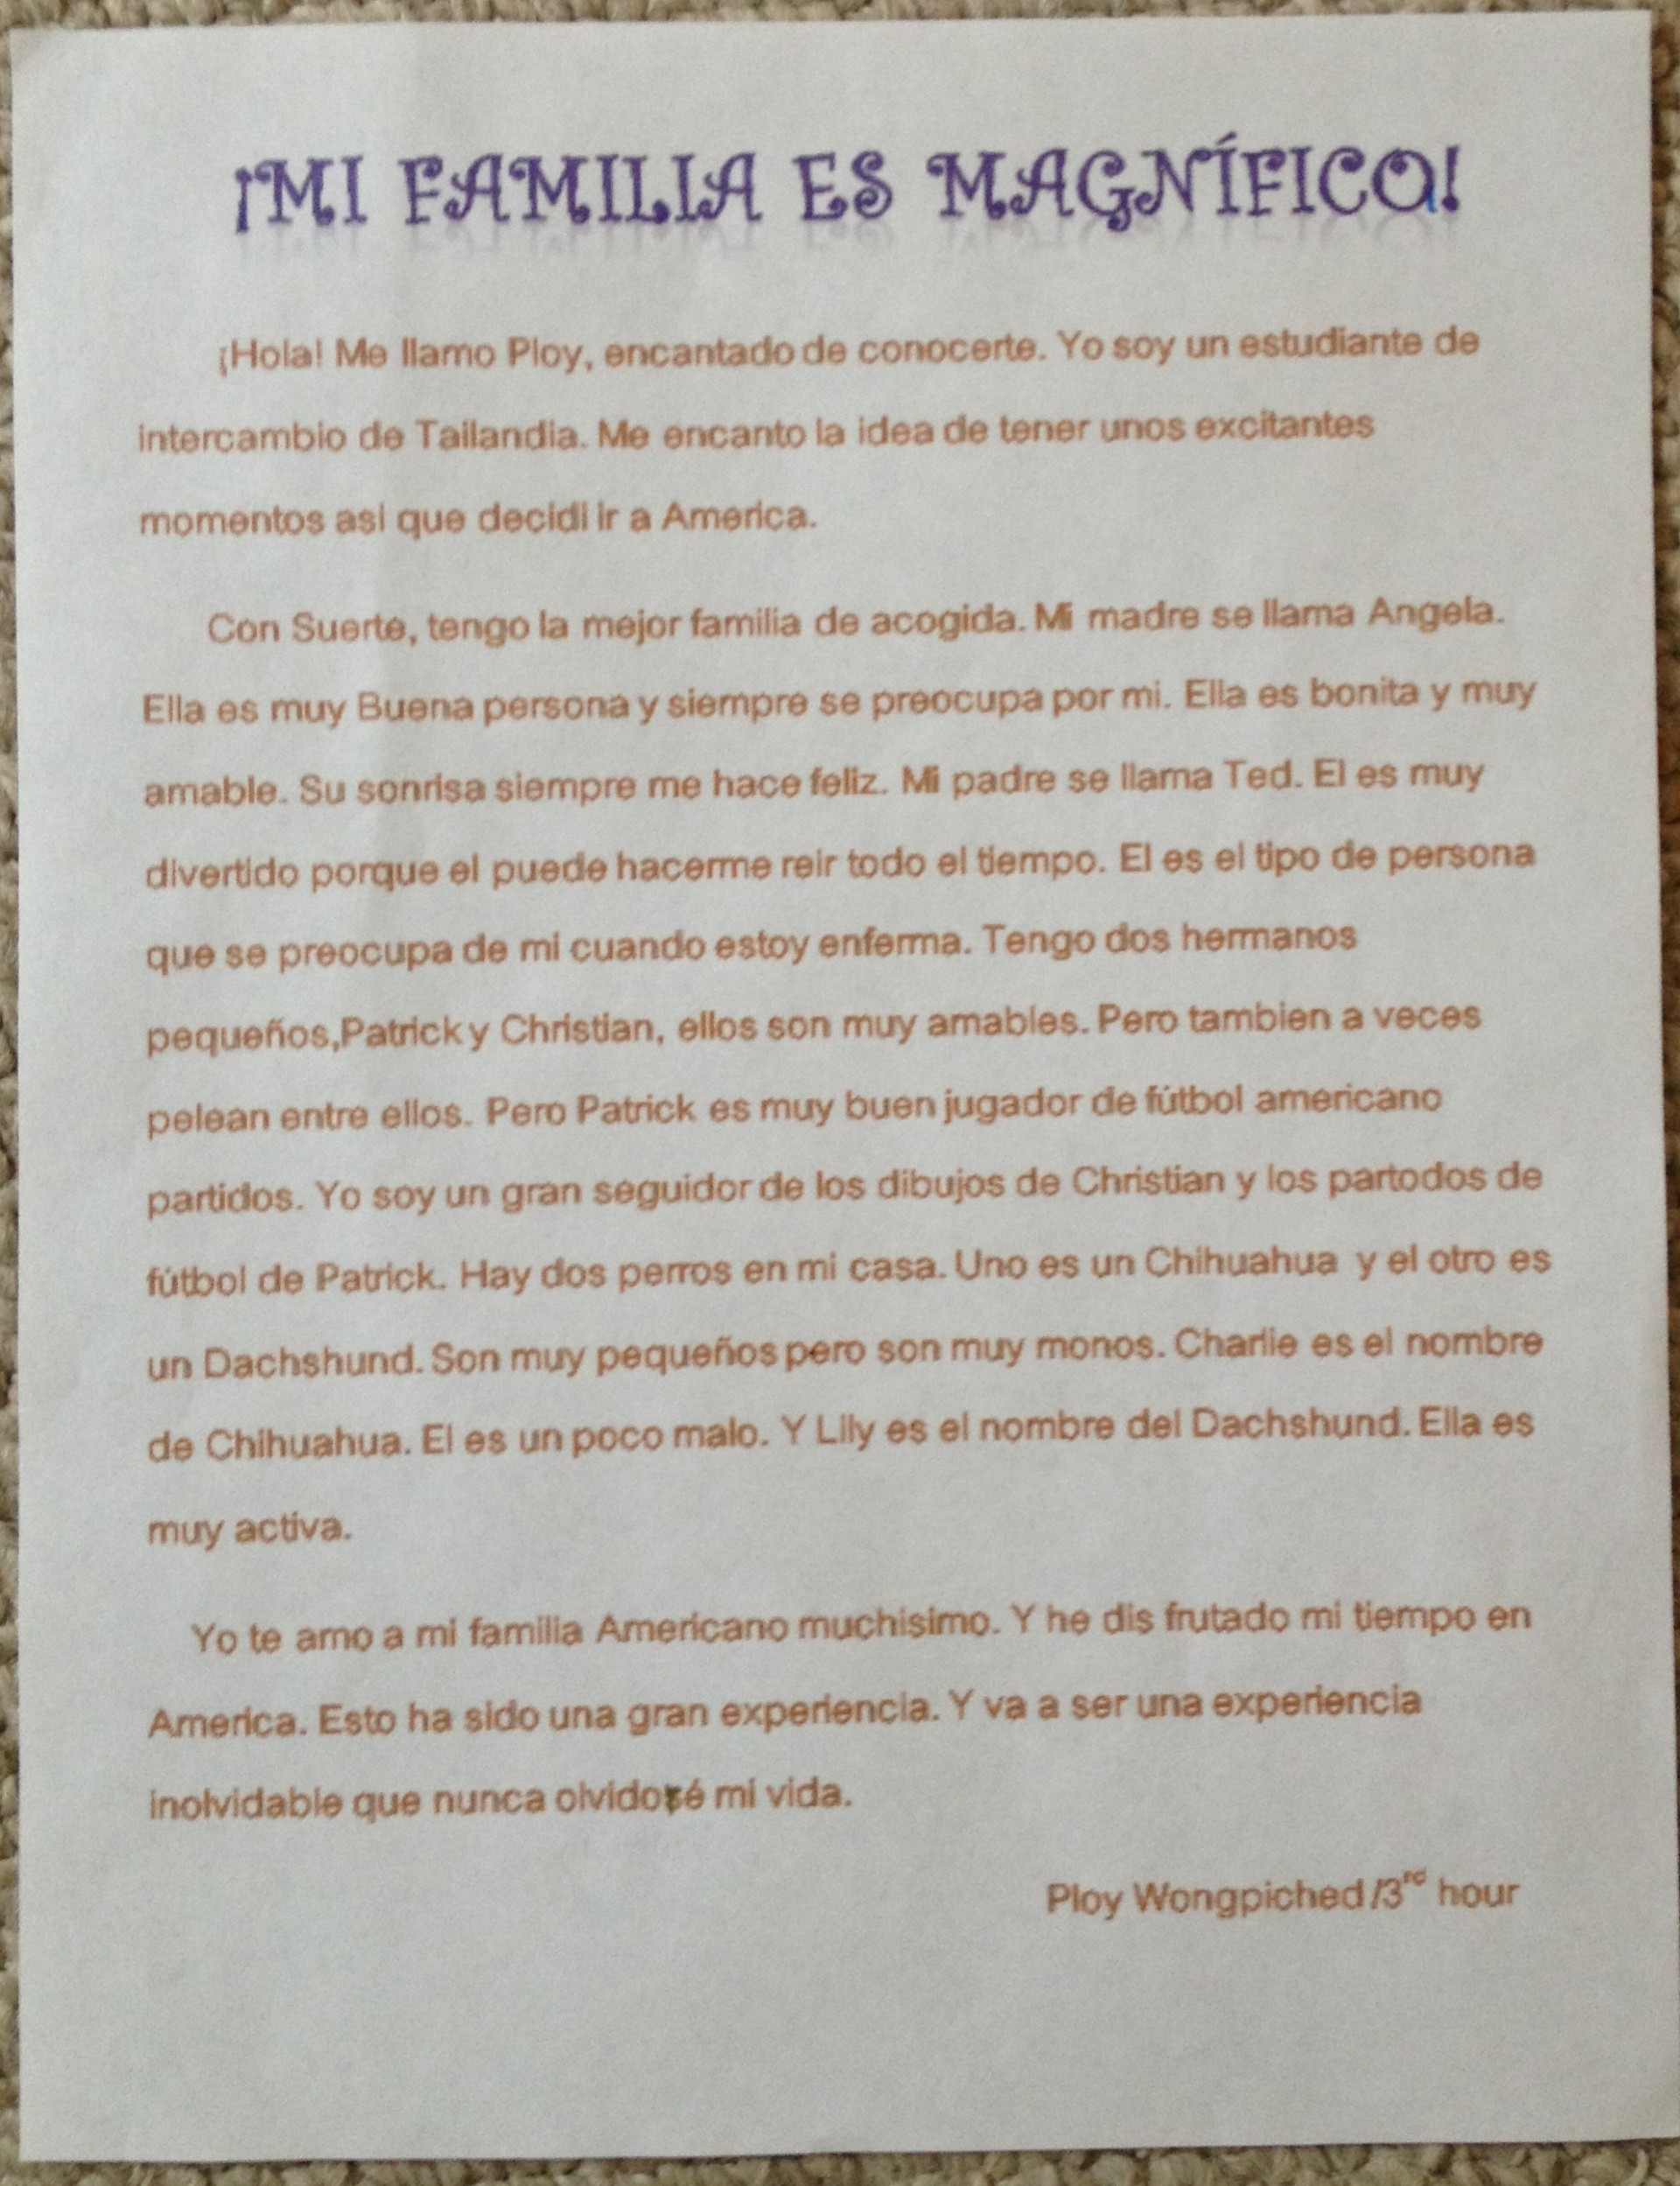 017 Essay Example Meaning In Spanish Marvelous English Means Friend Translate 1920